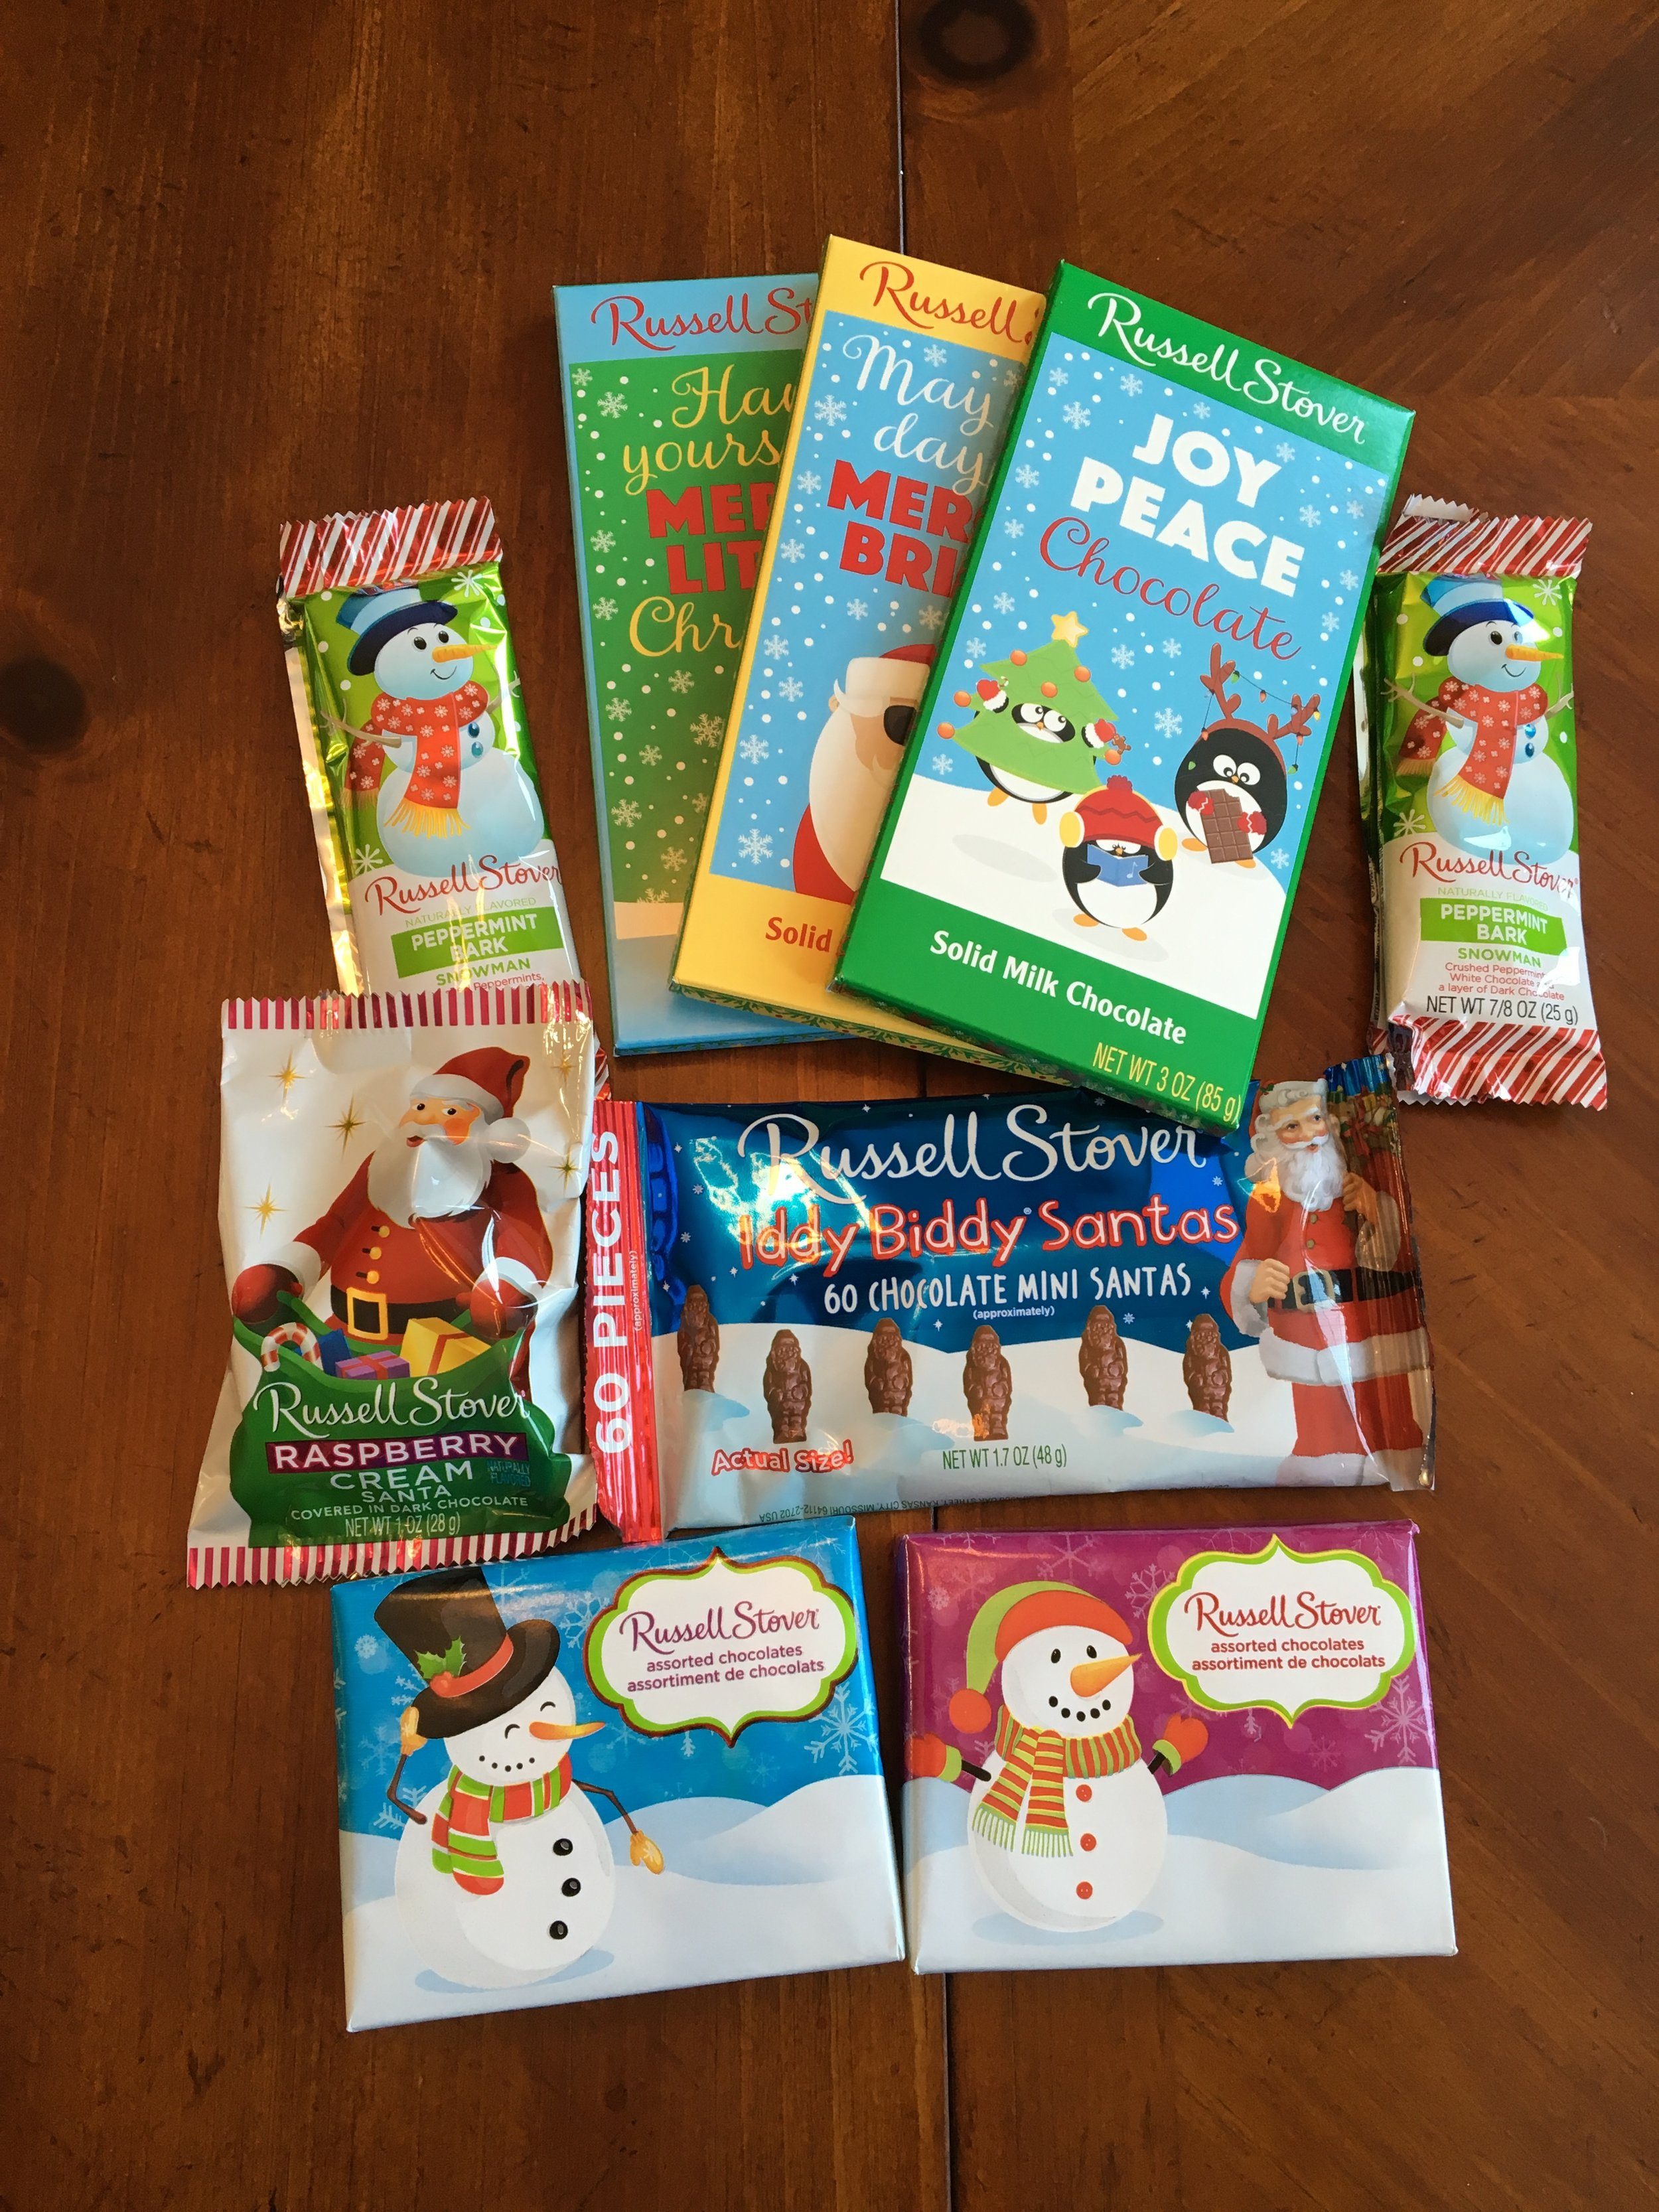 Russell Stover's Holiday Chocolates